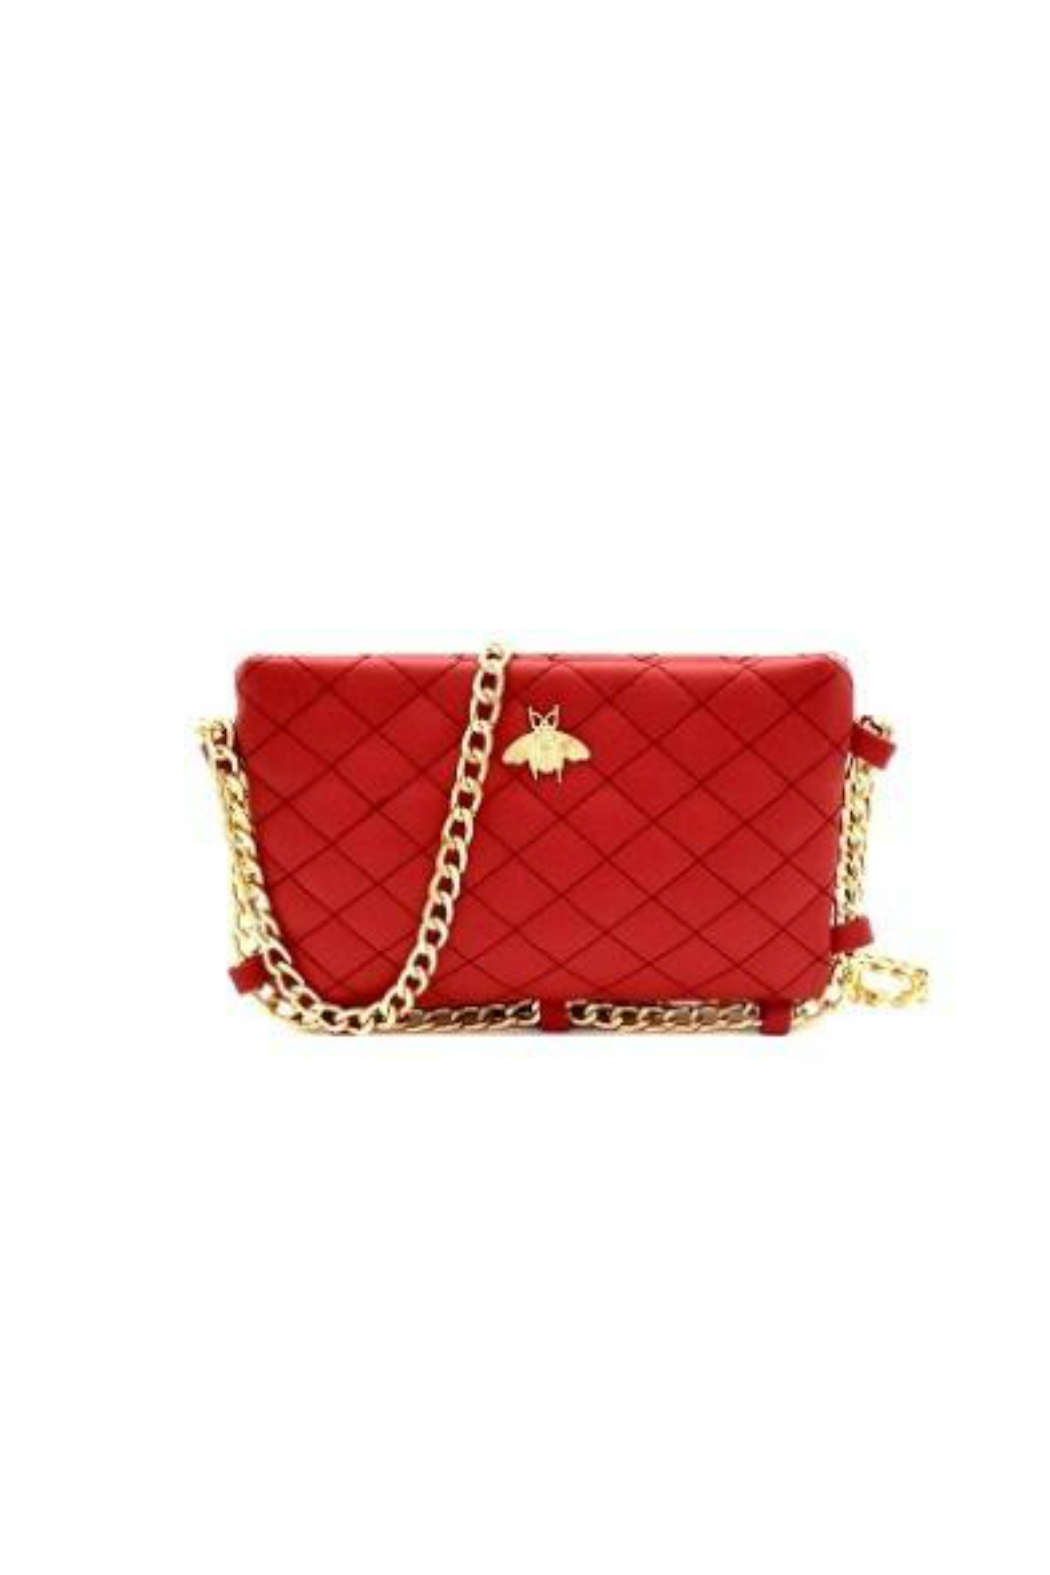 Gift Girl Quilted bee crossbody with gold chain strap - Front Cropped Image